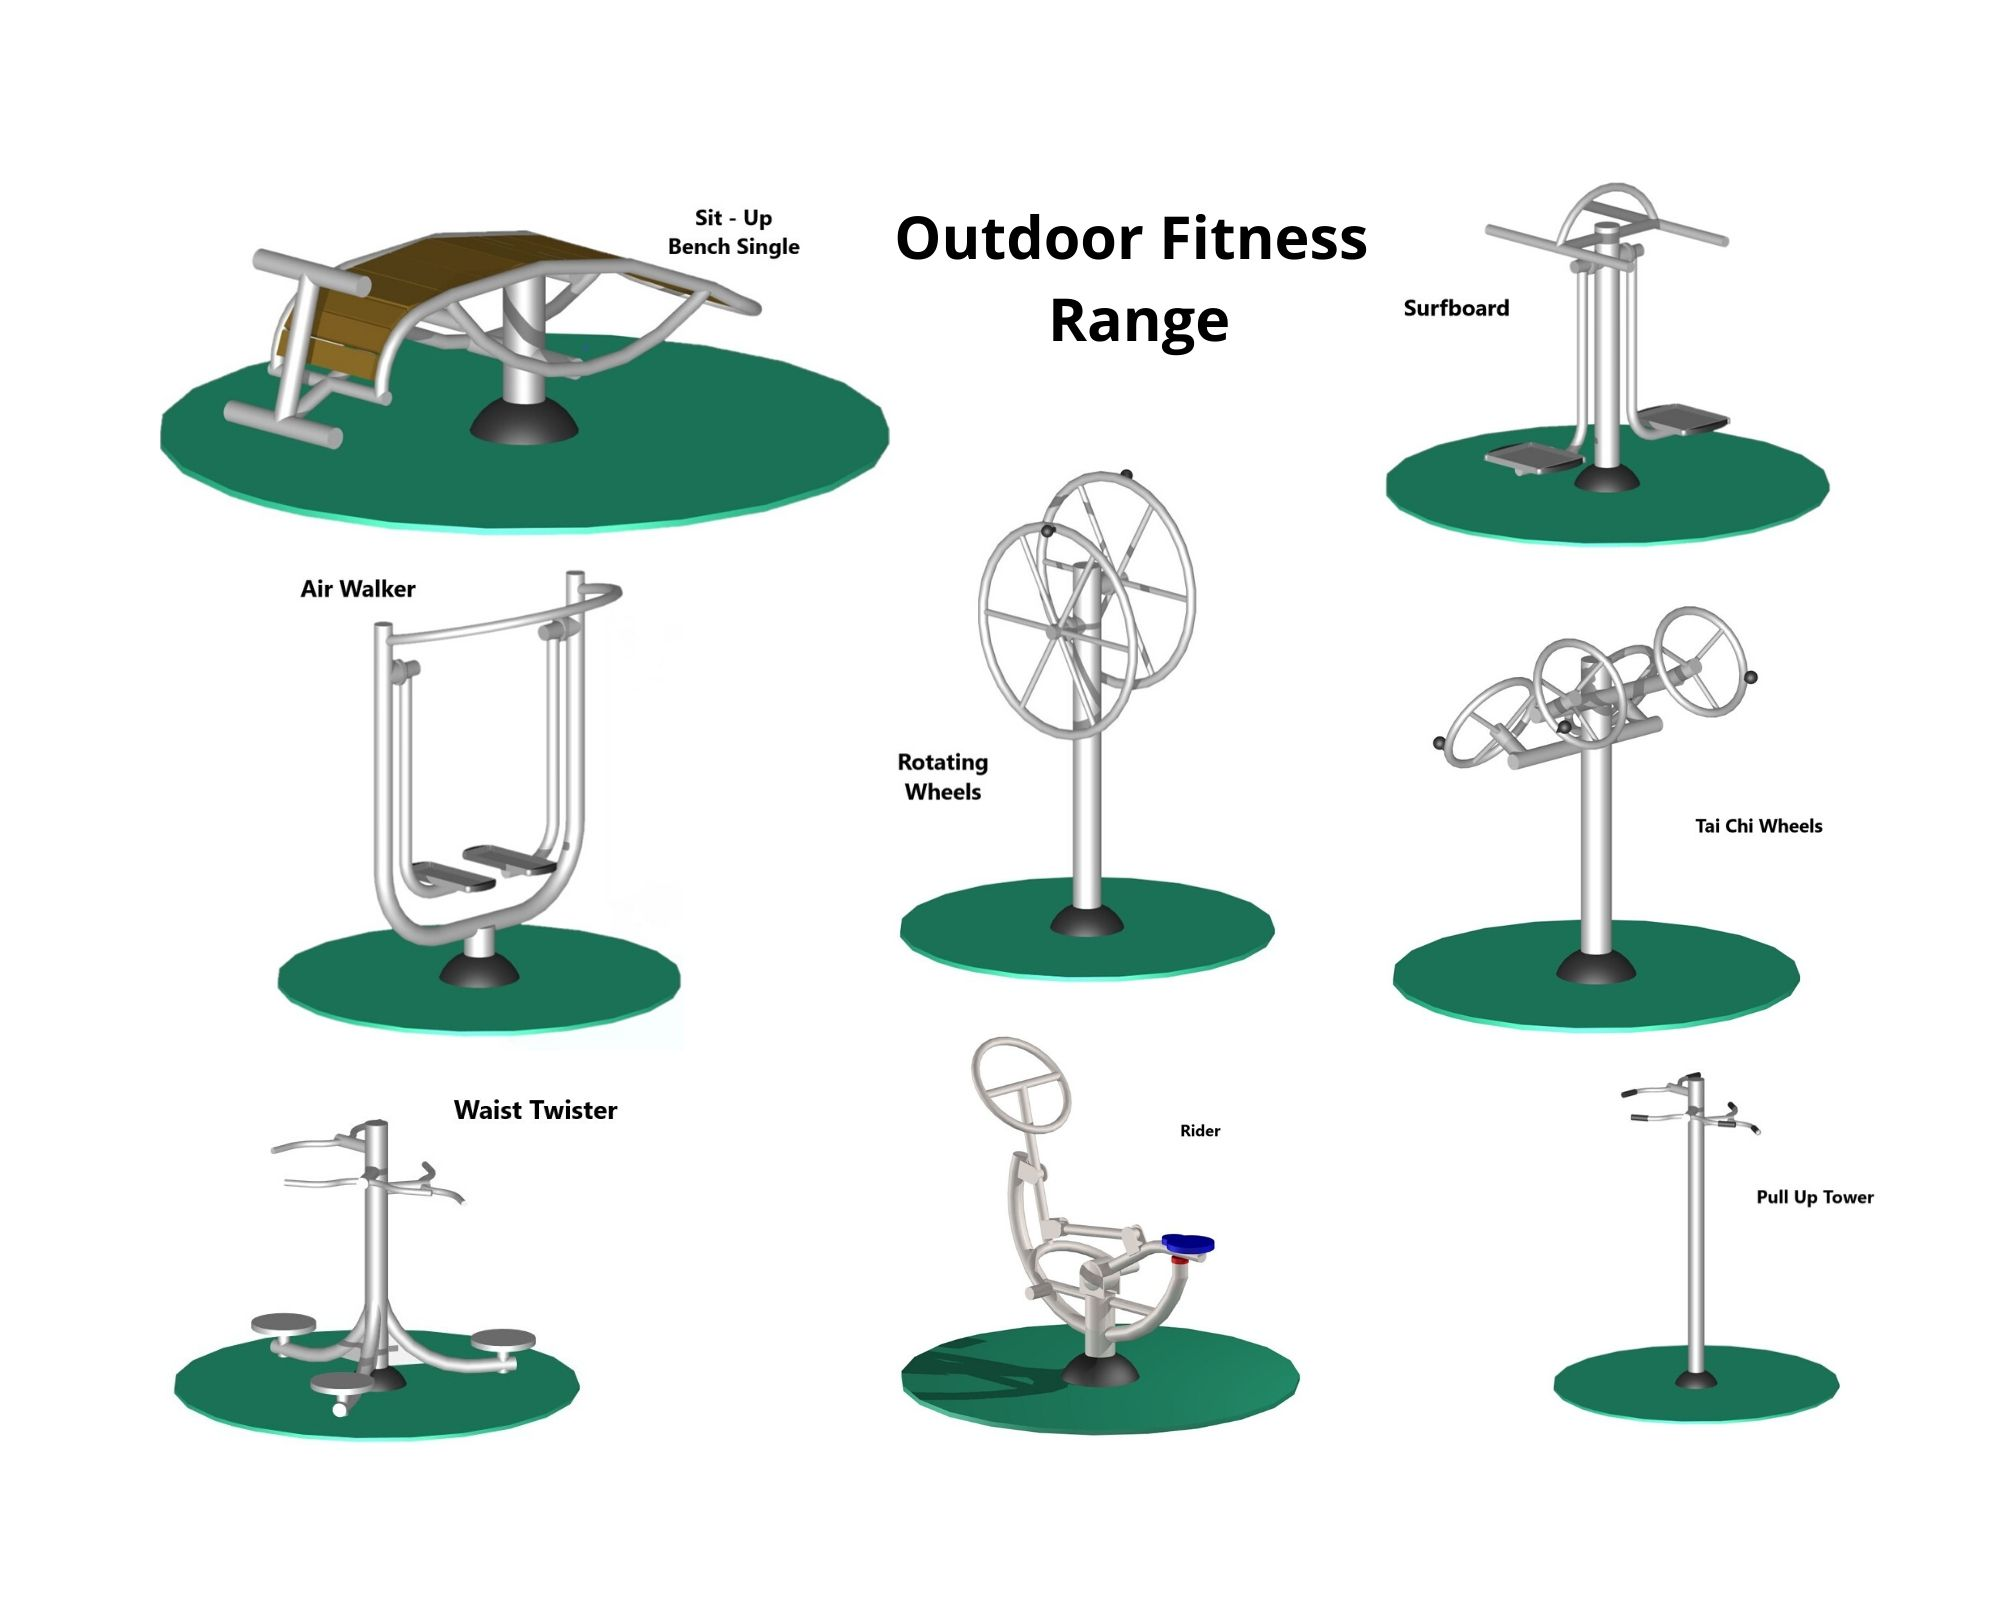 Outdoor Fitness Range